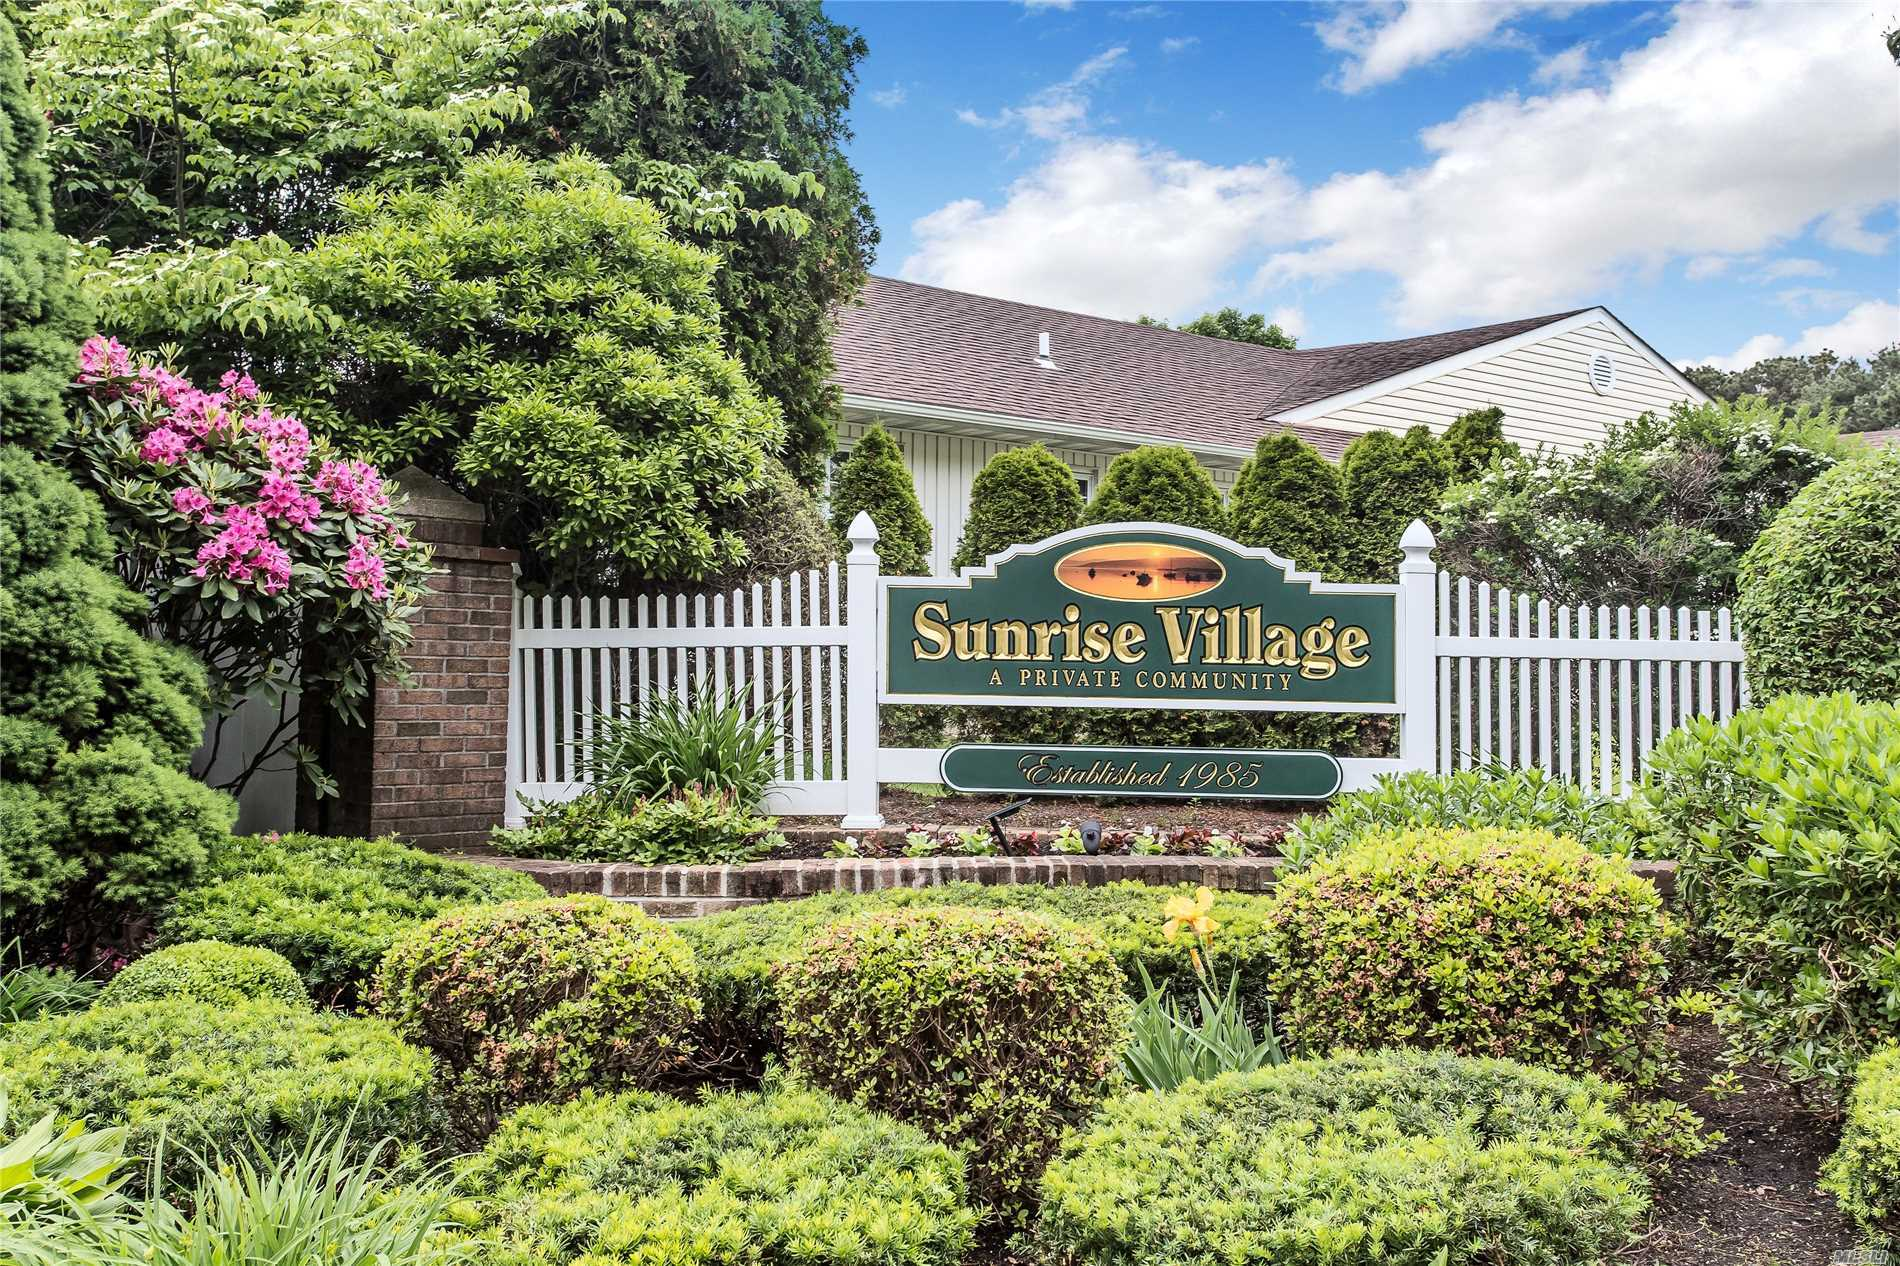 Immaculate, Turn Key Unit! Carlise Model. Master bedroom with walk in closet and full bathroom. Second bedroom and full bathroom, pretty kitchen with crisp white cabinetry. Tons Of Storage, Laundry/Mudroom, Attached Garage. Must See!